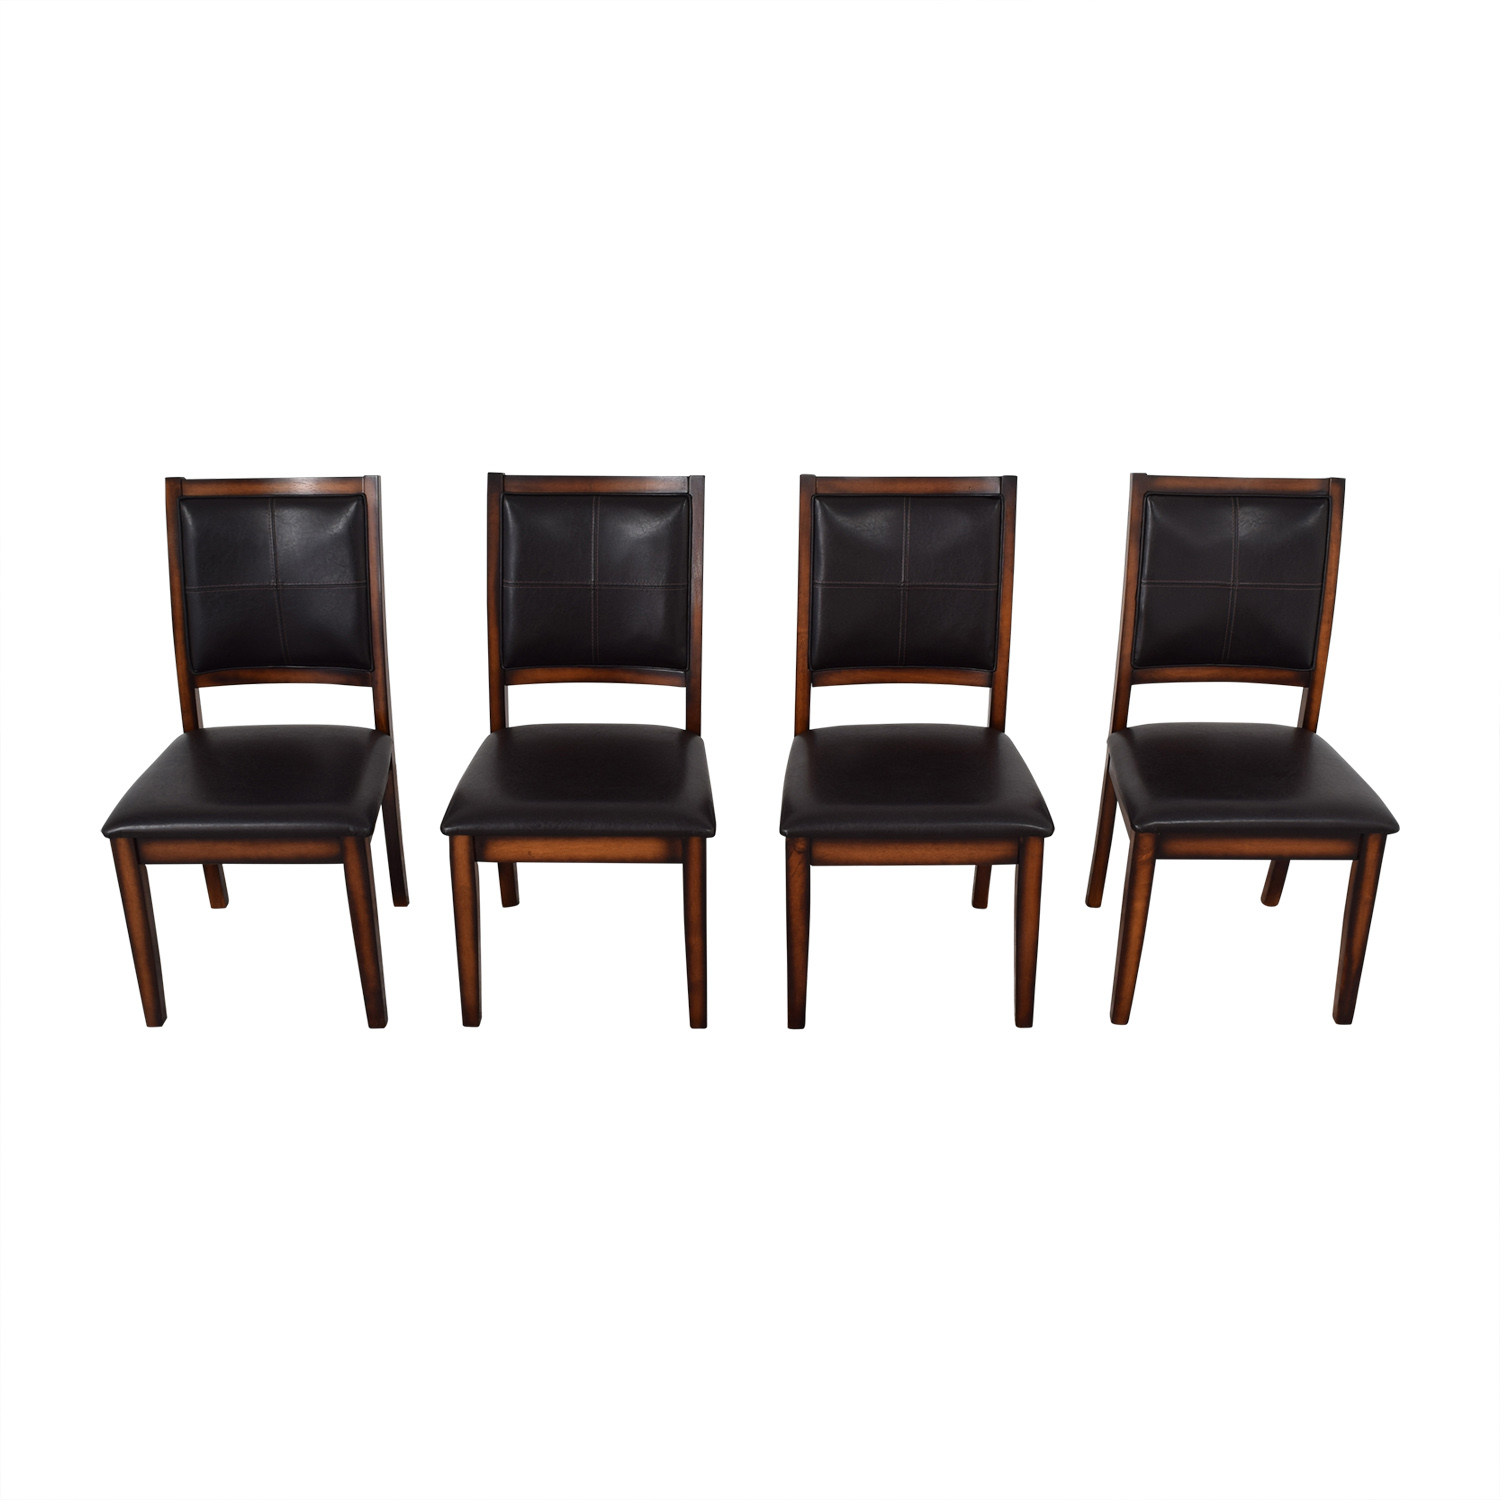 Raymour & Flanigan Raymour & Flanigan Upholstered Dining Chairs ma